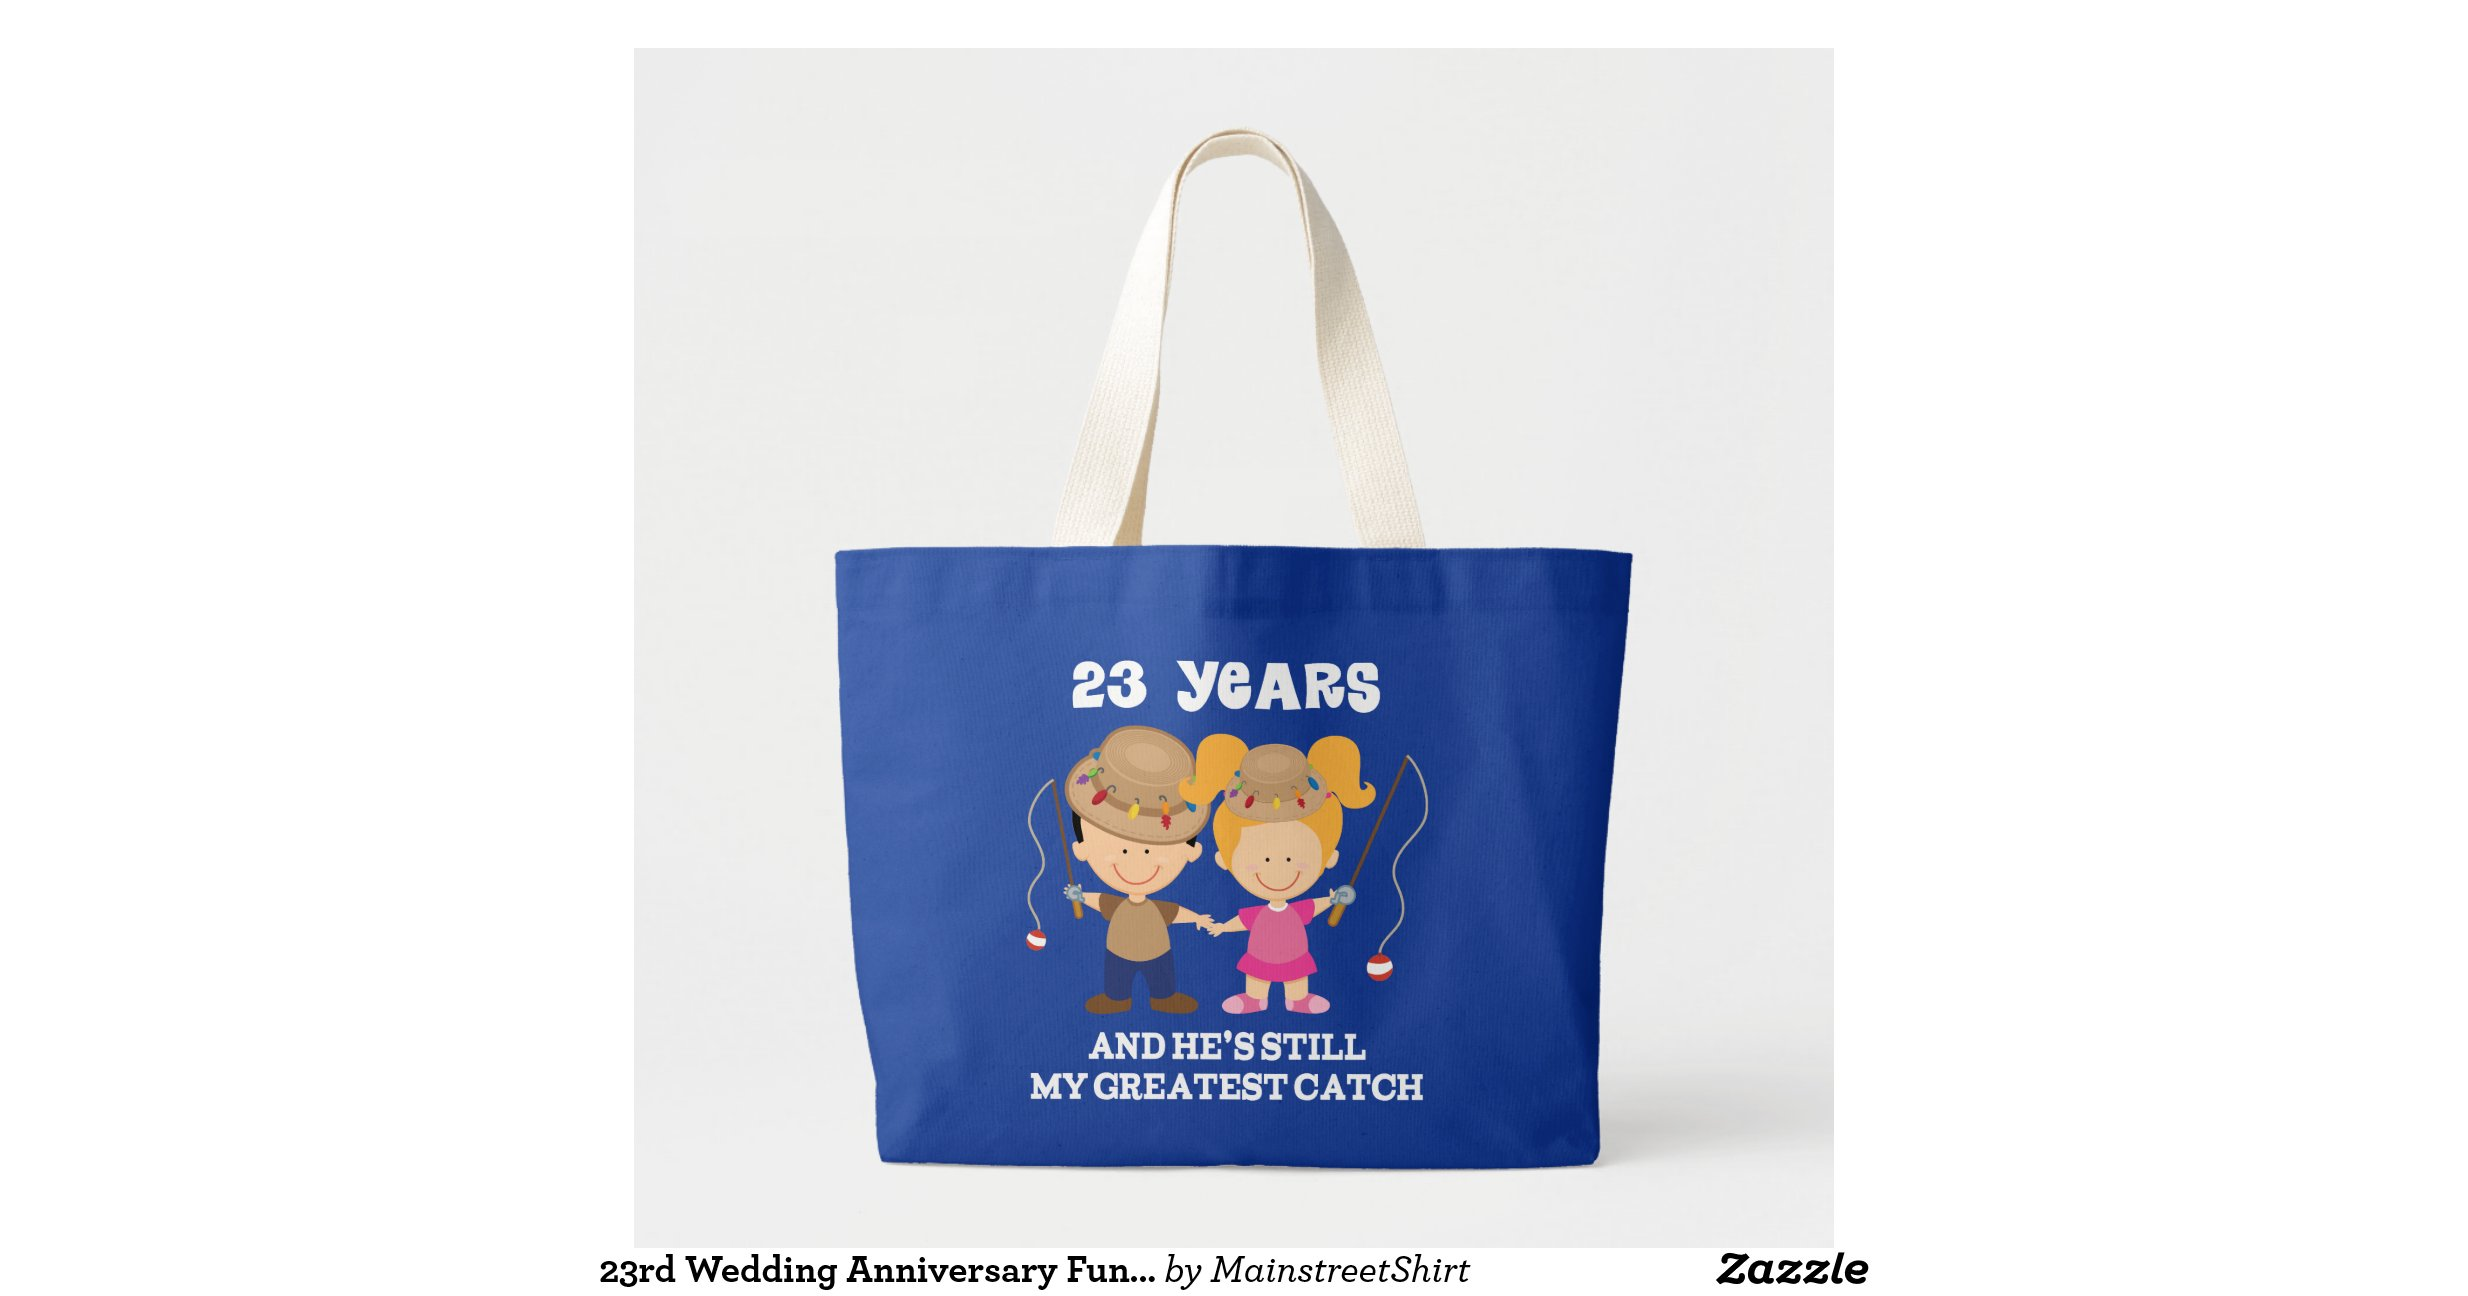 23rd Wedding Anniversary Gift Ideas: 23rd Wedding Anniversary Funny Gift For Her Jumbo Tote Bag